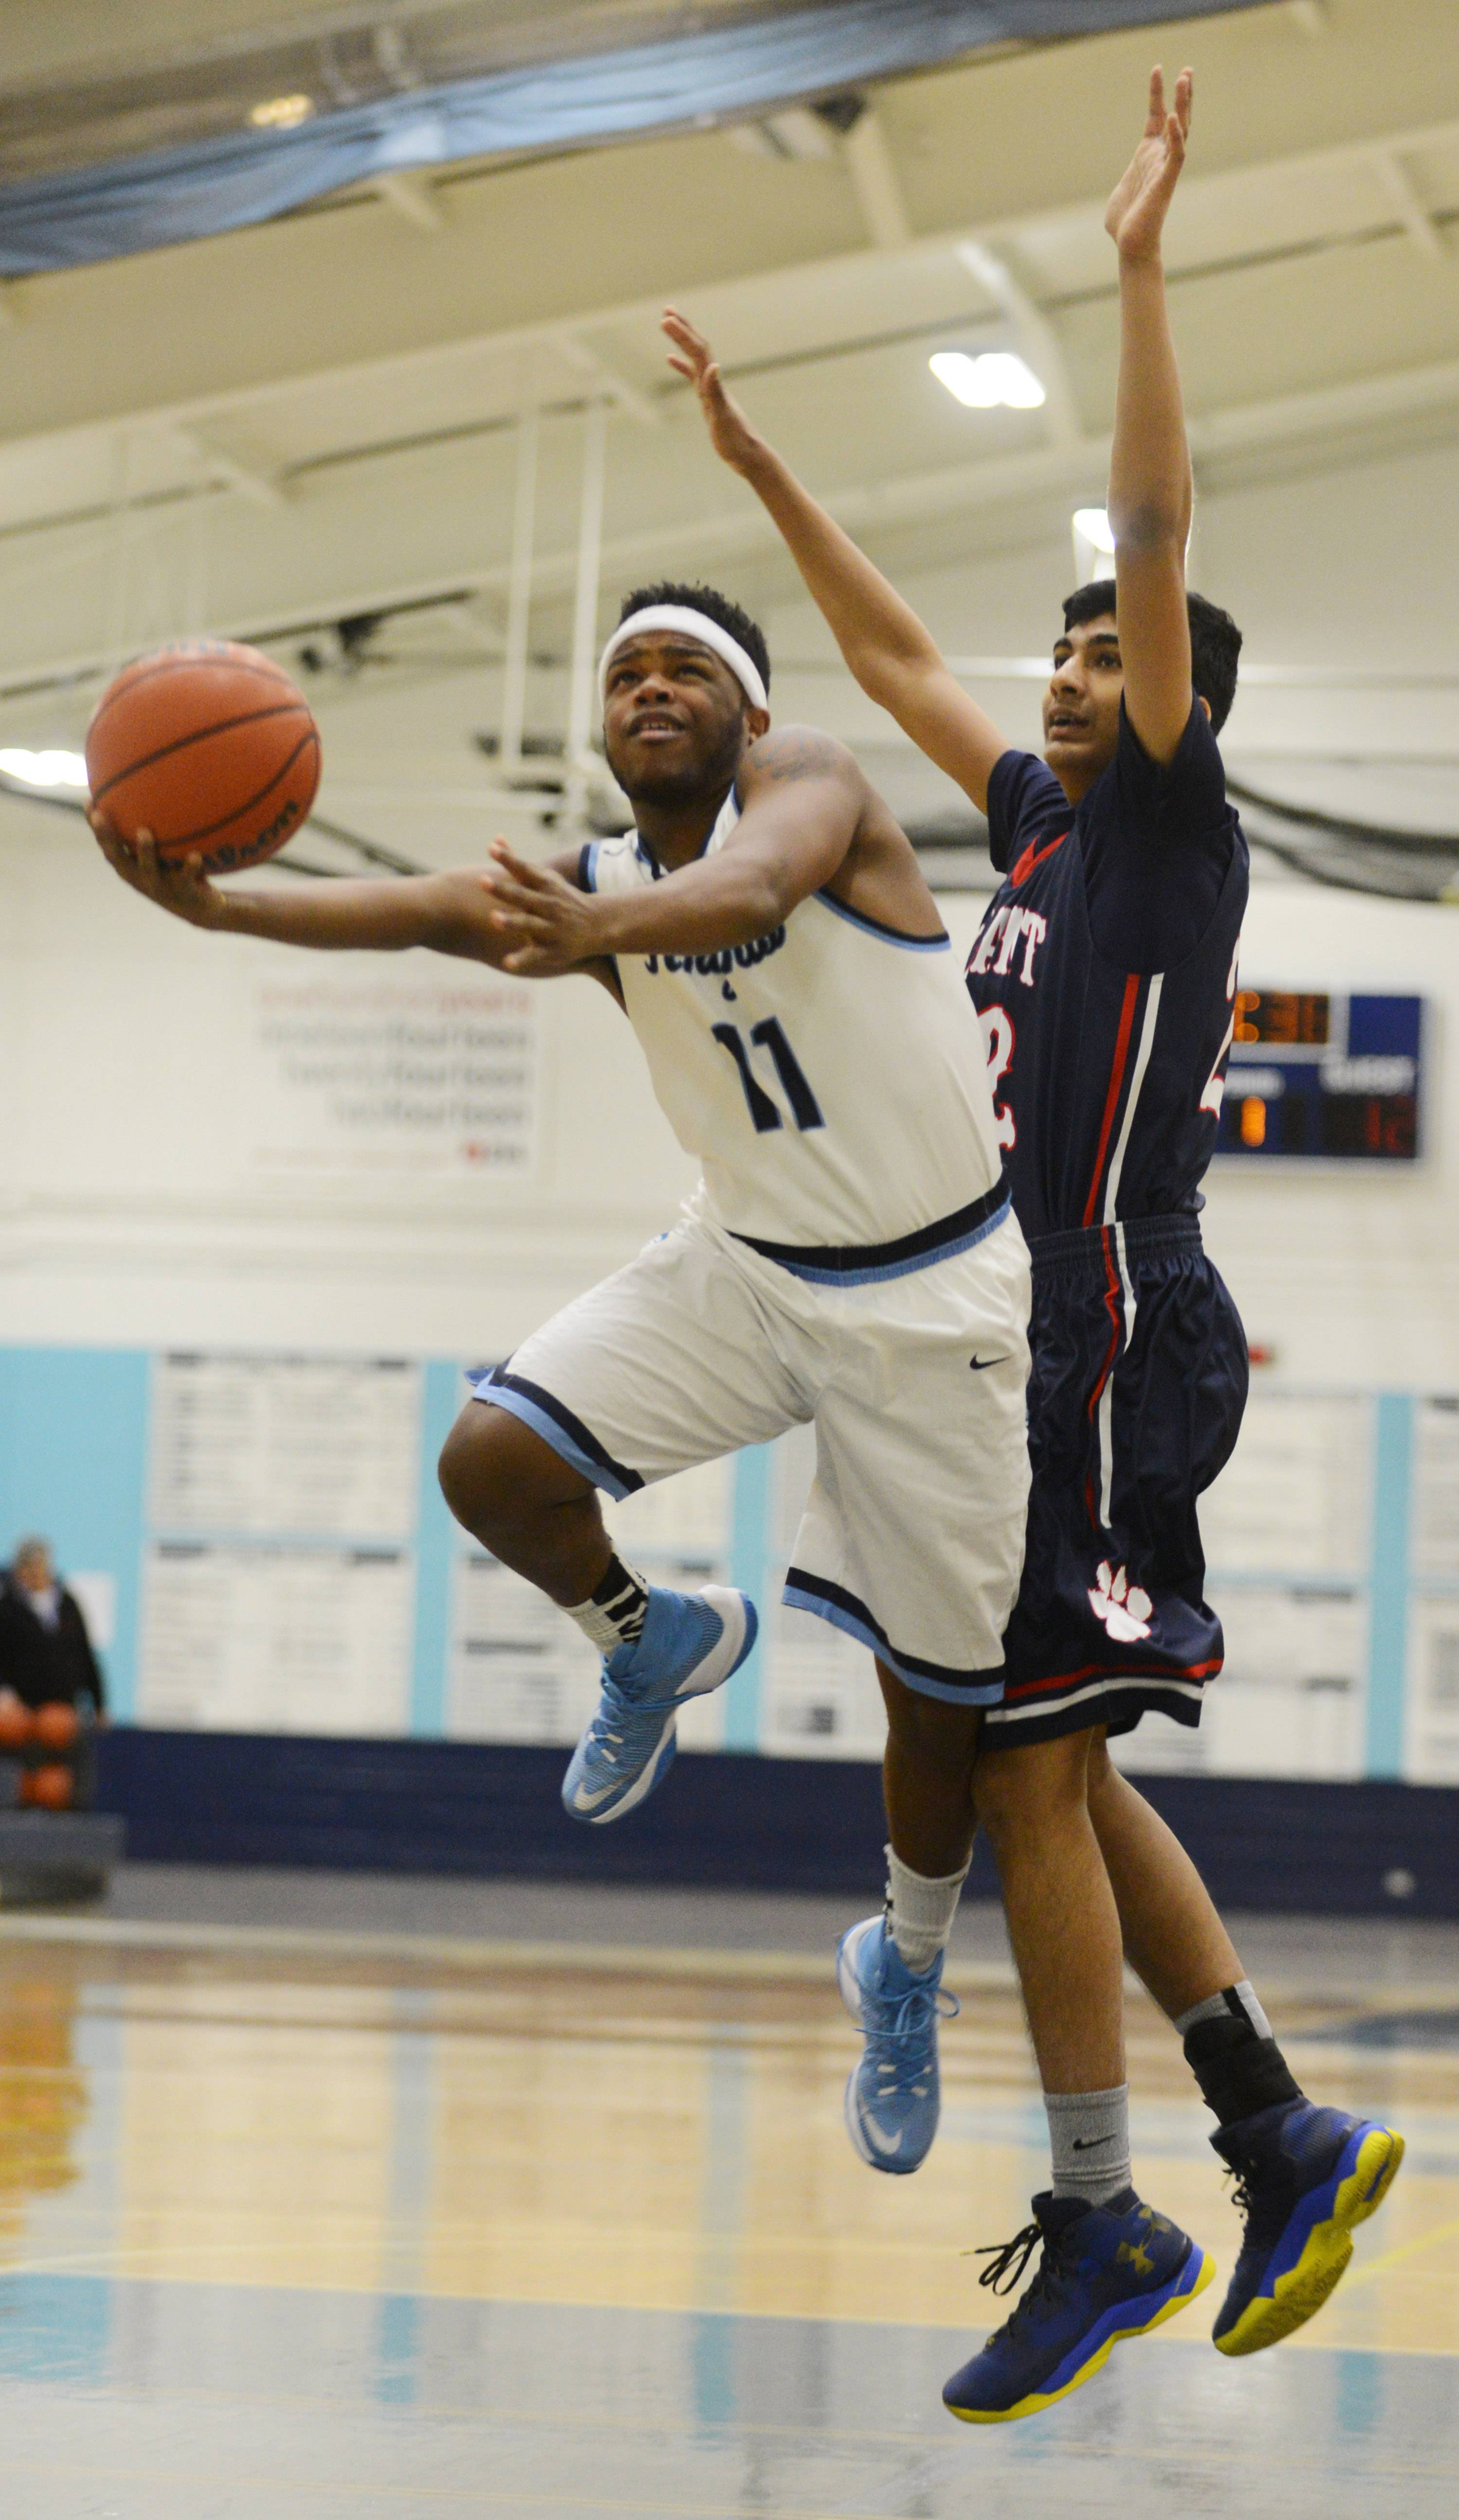 Prospect's Antonio Gardner drives past Conant's Raja Mittal for a layup during Tuesday's game in Mount Prospect.